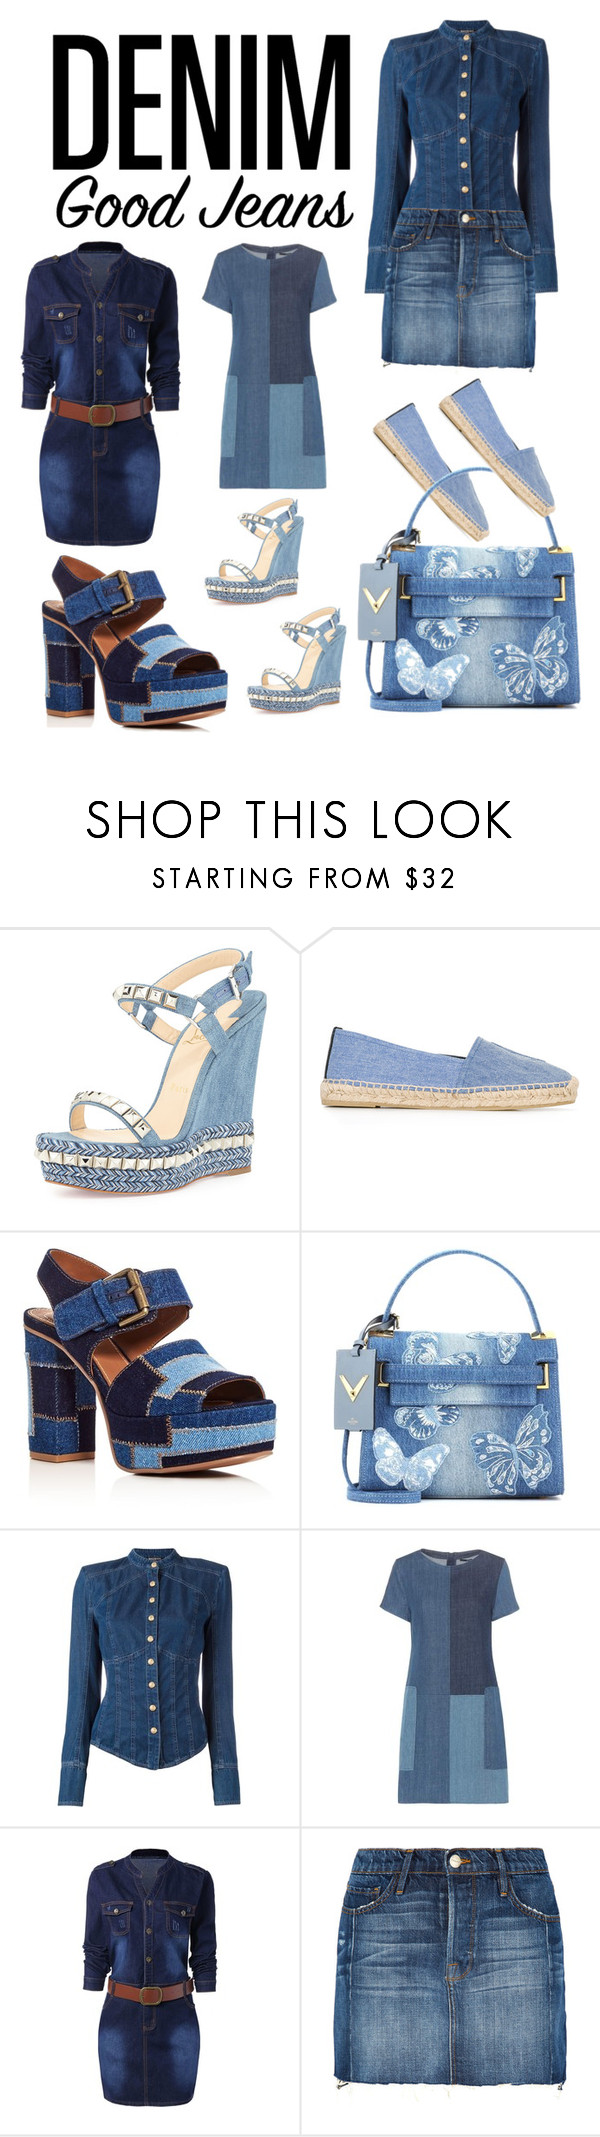 """""""👖Denim head to toe👖"""" by jojoberryperry ❤ liked on Polyvore featuring Christian Louboutin, Yves Saint Laurent, See by Chloé, Valentino, Balmain, J Brand, Frame and alldenim"""